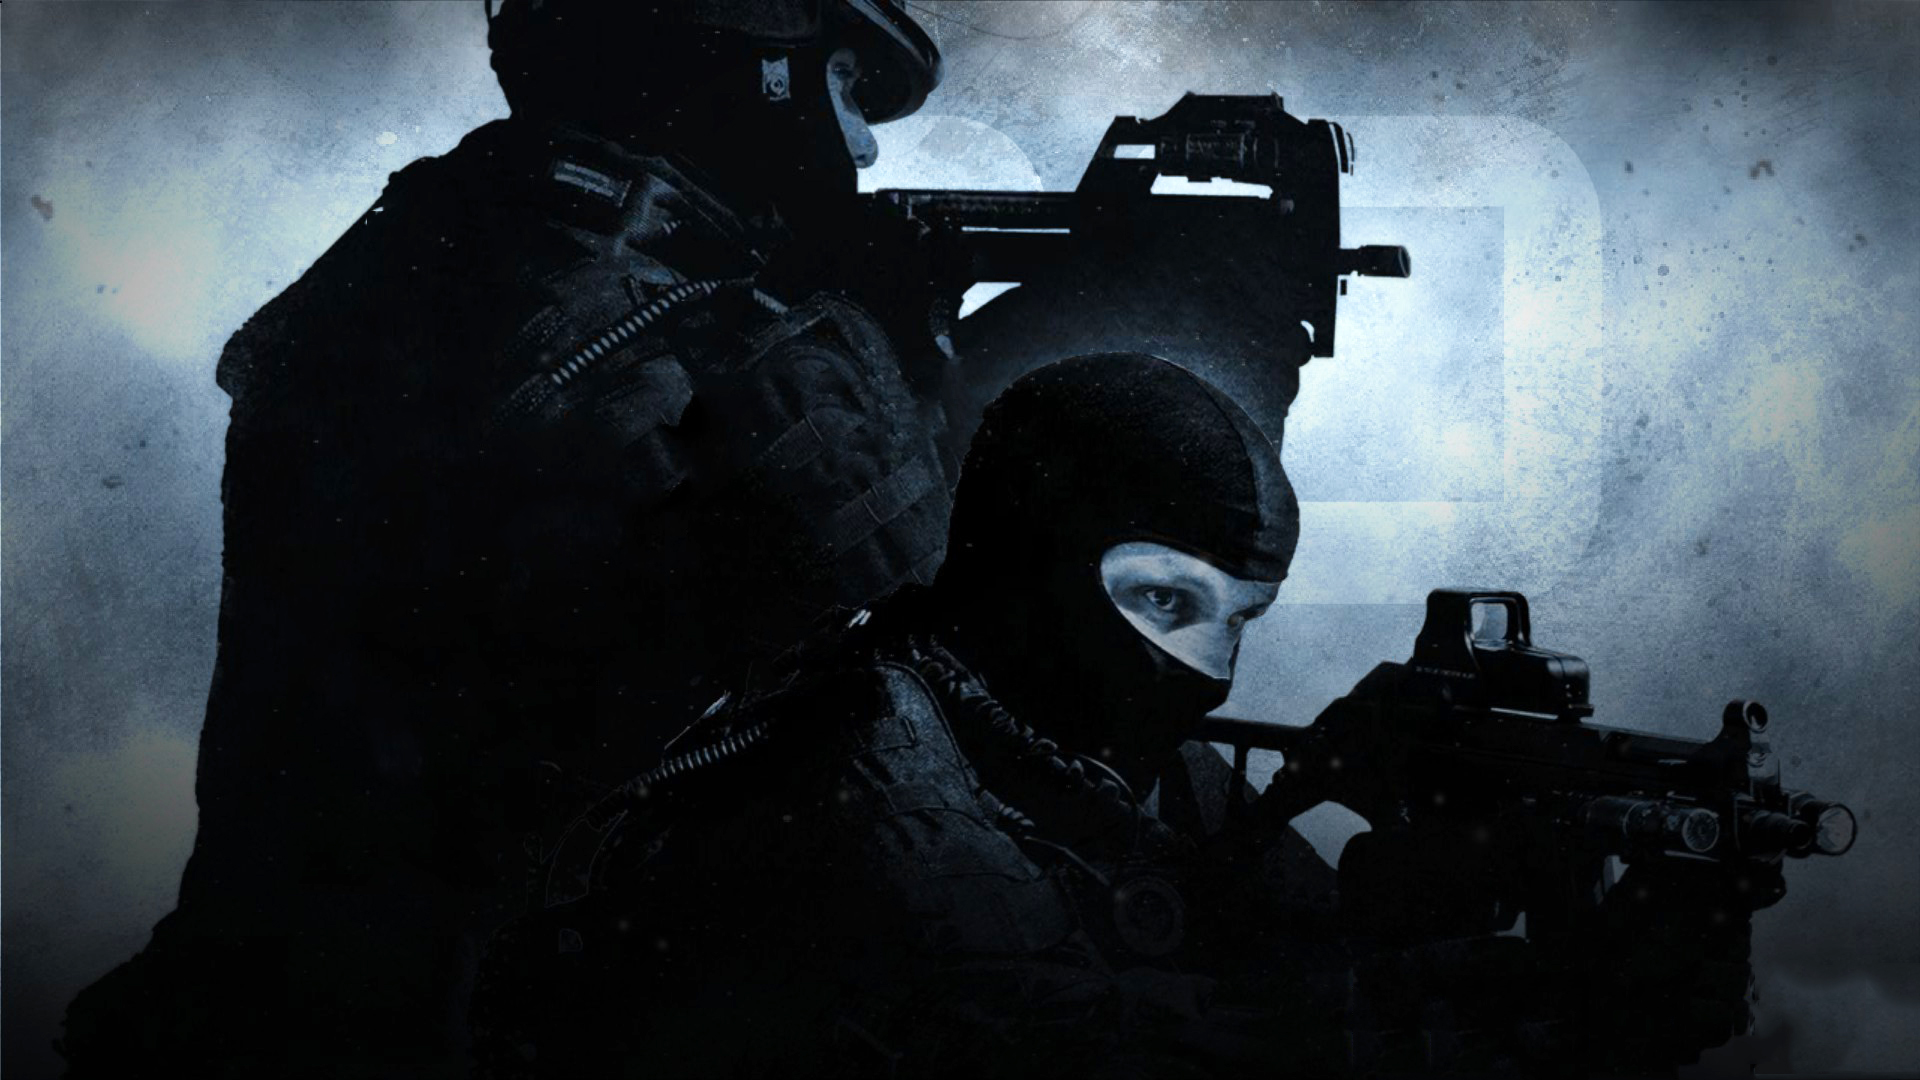 Counter-Strike-Dual-Screen-x-ID-wallpaper-wp3804090